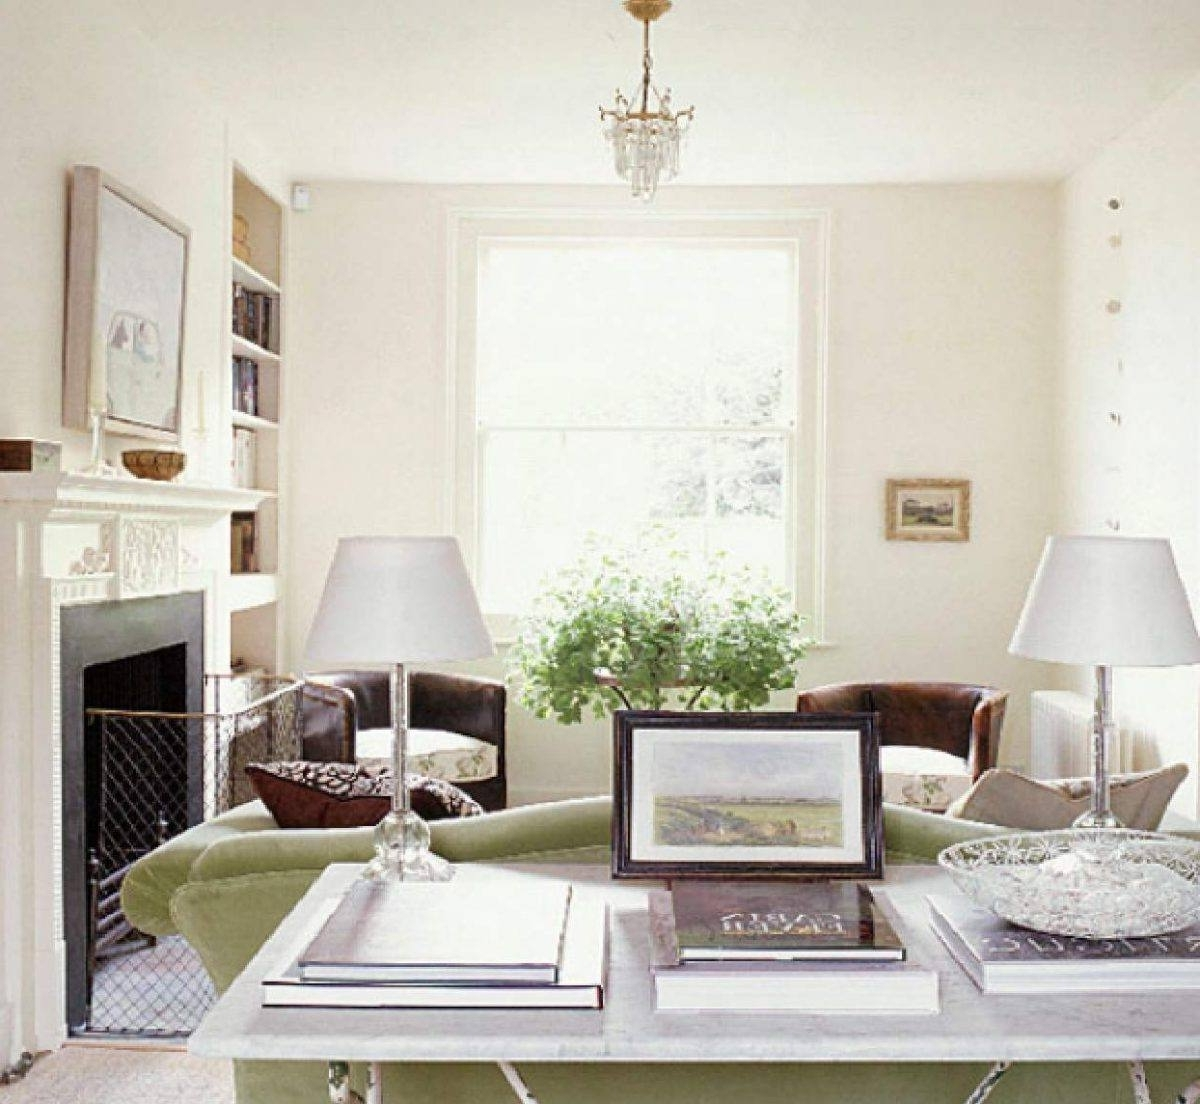 6 Things Keep In Mind Before Buying Table Lamps – Papertostone For Recent Living Room Coffee Table Lamps (Gallery 2 of 20)